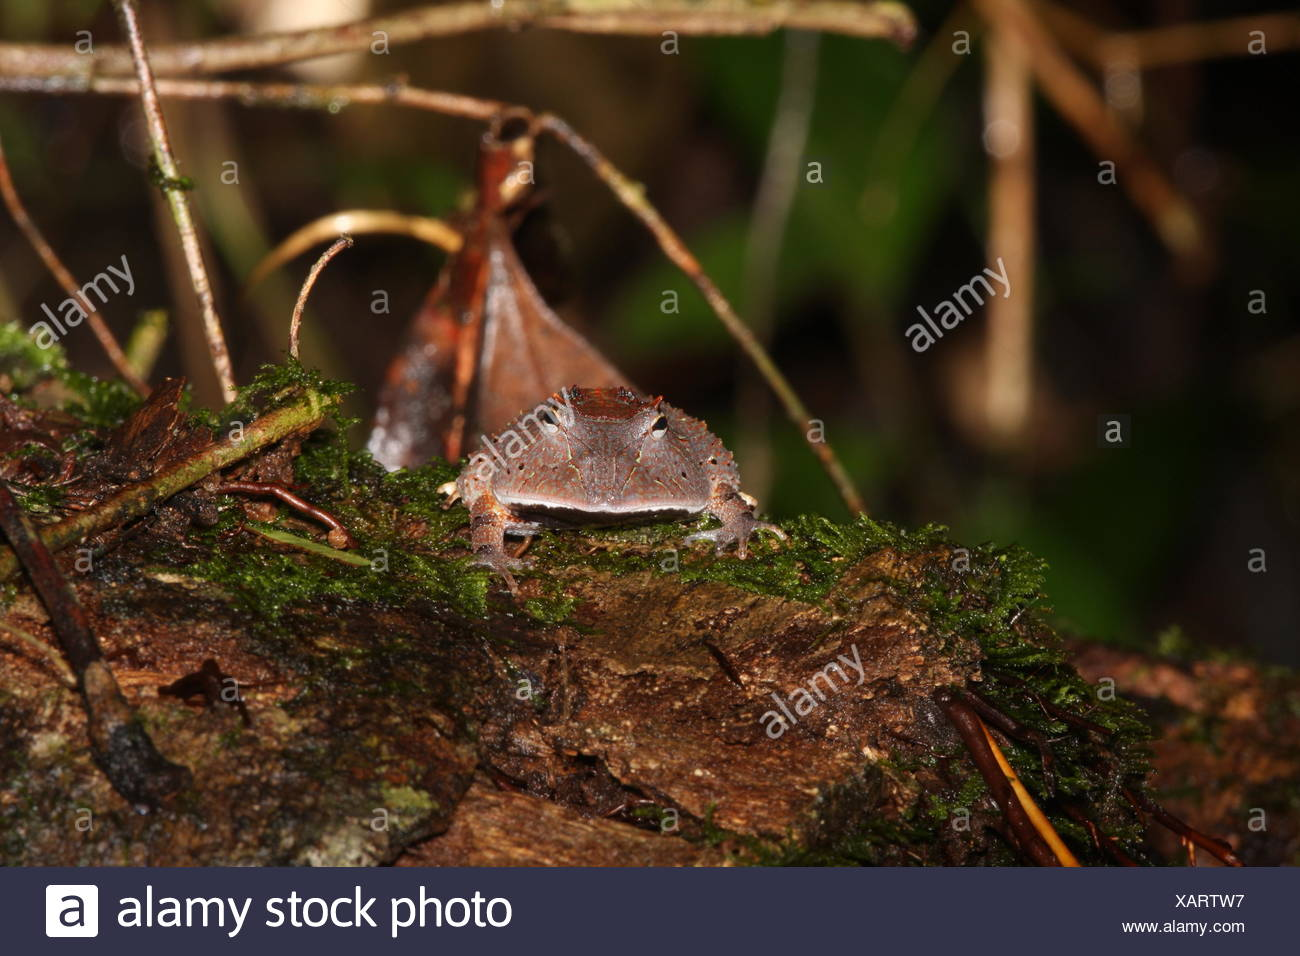 Amazon horned frog, Ceratophrys cornuta. Aggressively territorial and voracious. Will attack anything their size or smaller. Their ravenous appetite and huge mouths have earned them and other horned frogs the pet-trade nickname Pac Man frogs. Stock Photo